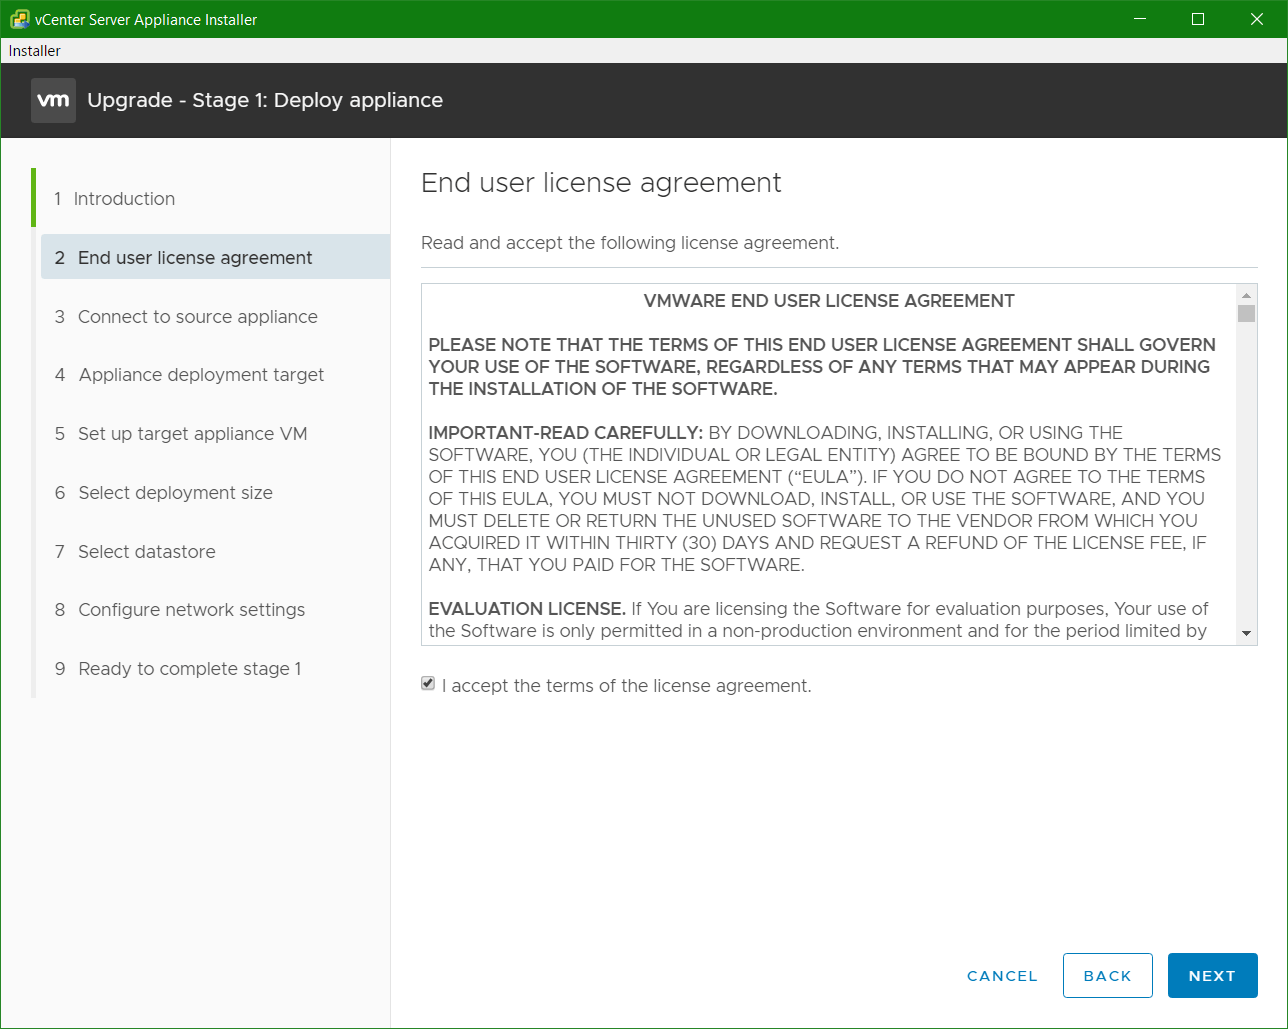 domalab.com VCSA upgrade stage 1 eula